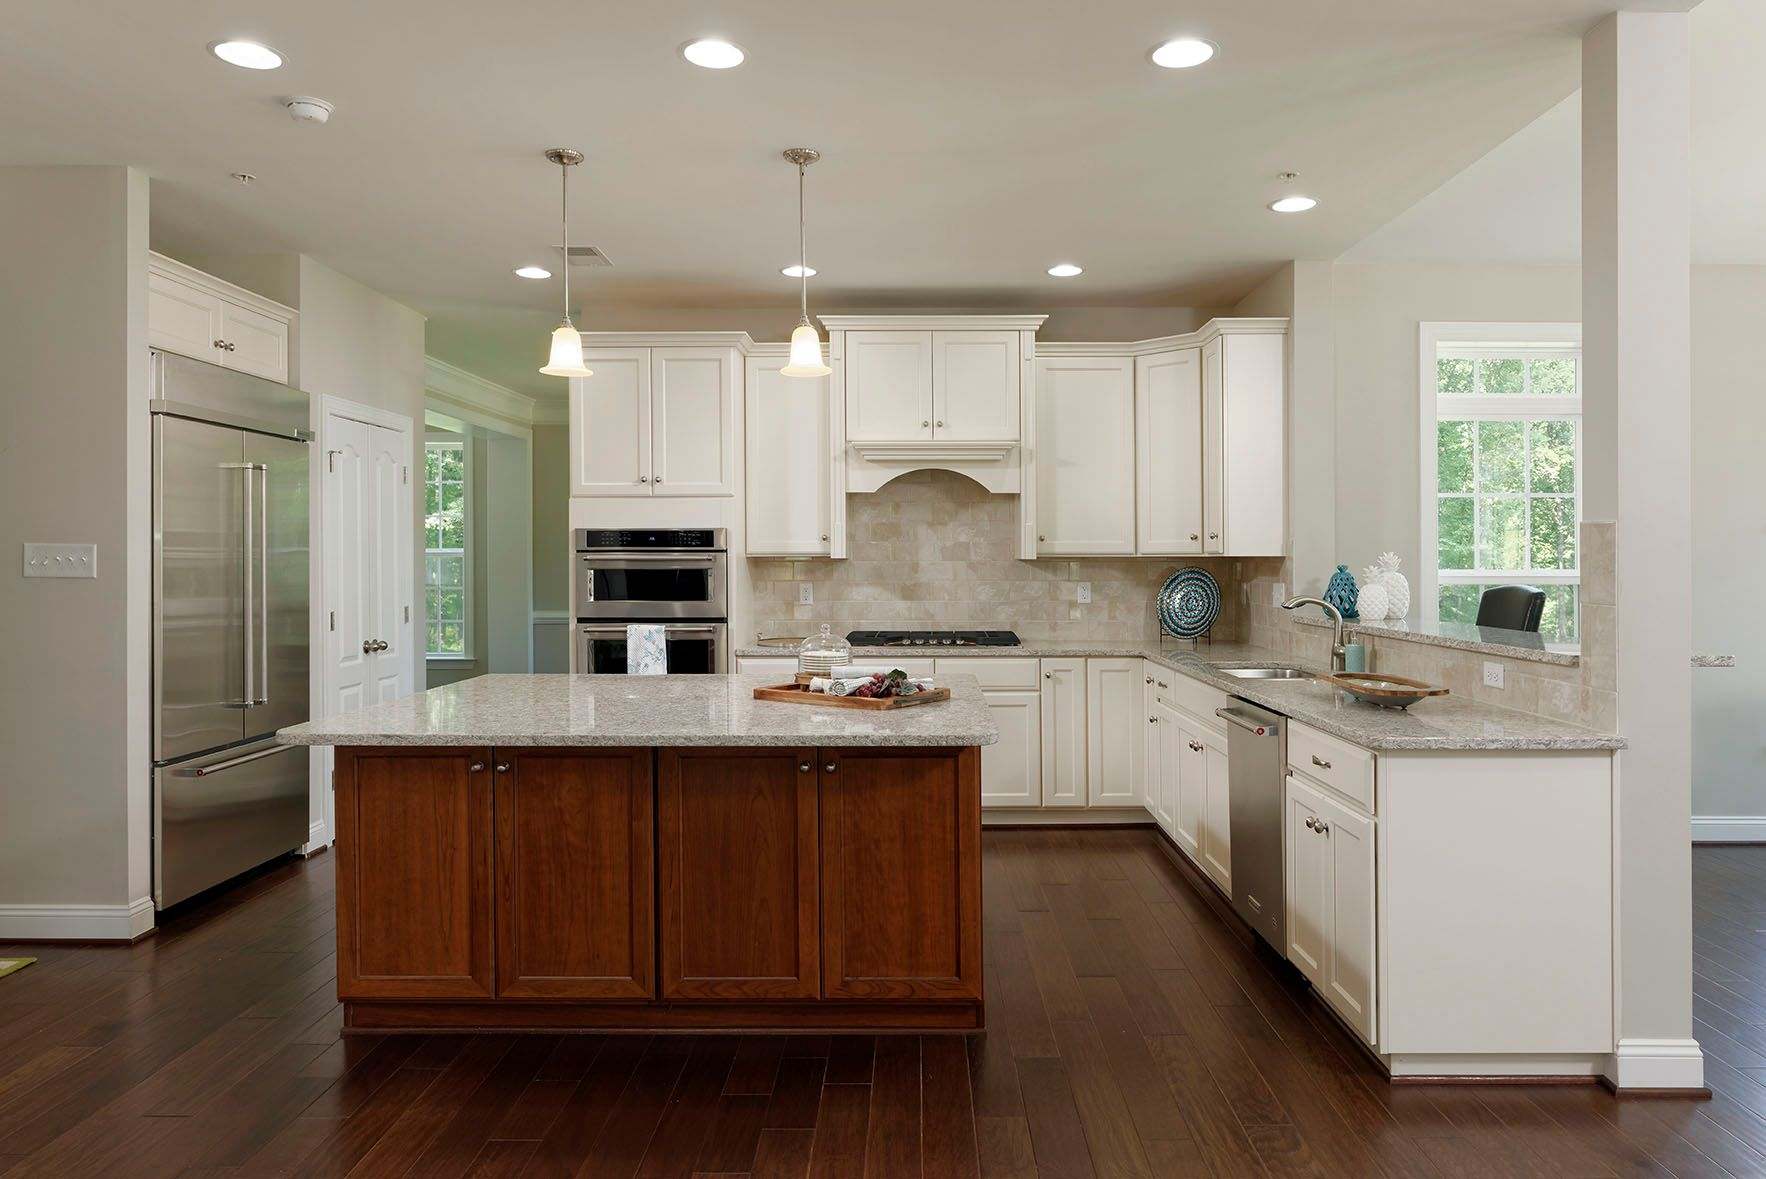 Kitchen featured in the William Deaven II  By Williamsburg Homes LLC in Baltimore, MD